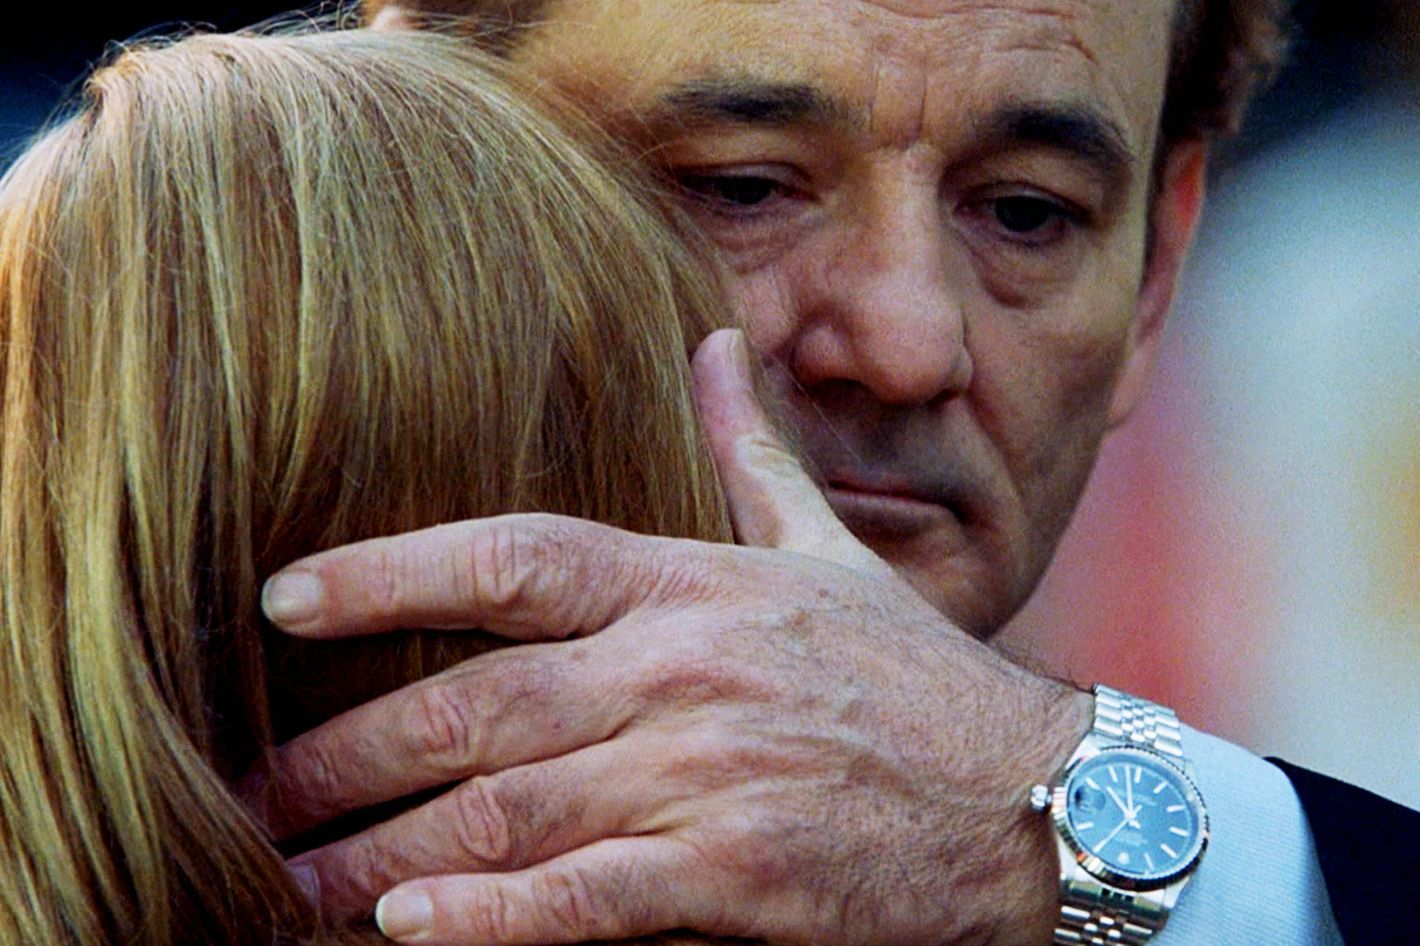 Theories on What Bill Murray Whispered at the End of Lost in Translation